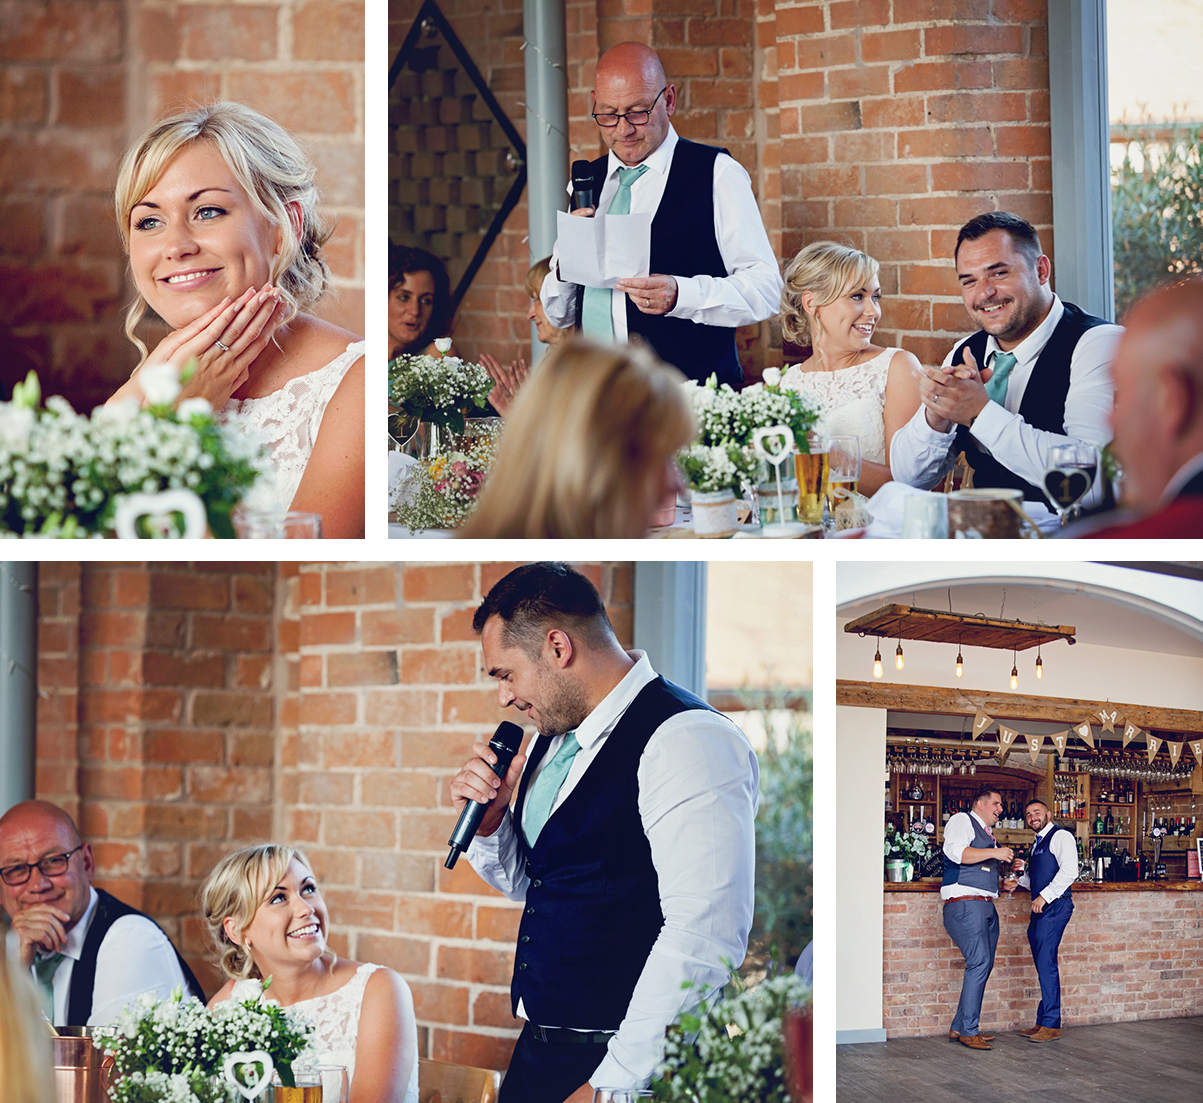 sally_crane_wedding_photography_warwickshire_5.jpg